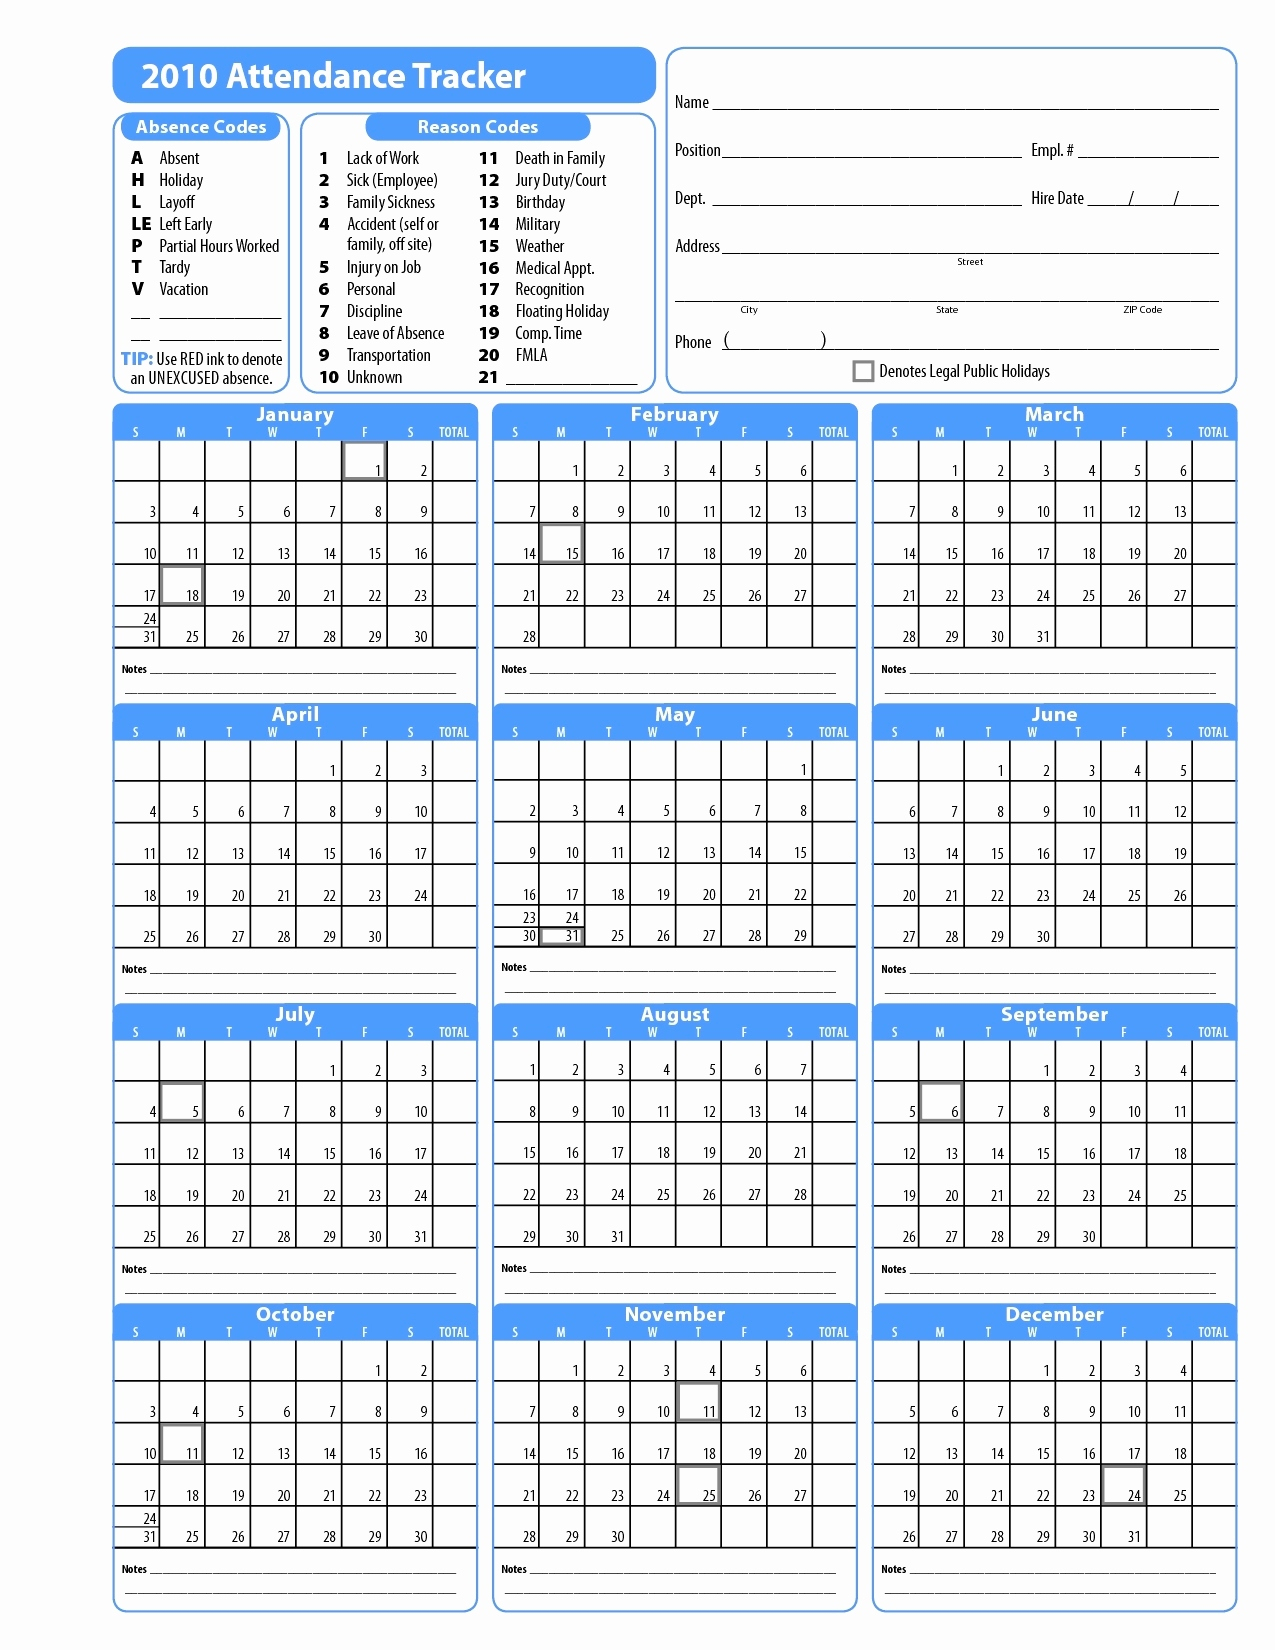 Fmla Tracking Spreadsheet Template Excel With Fmla Rolling Calendar Tracking Spreadsheet New Awesome Ofple